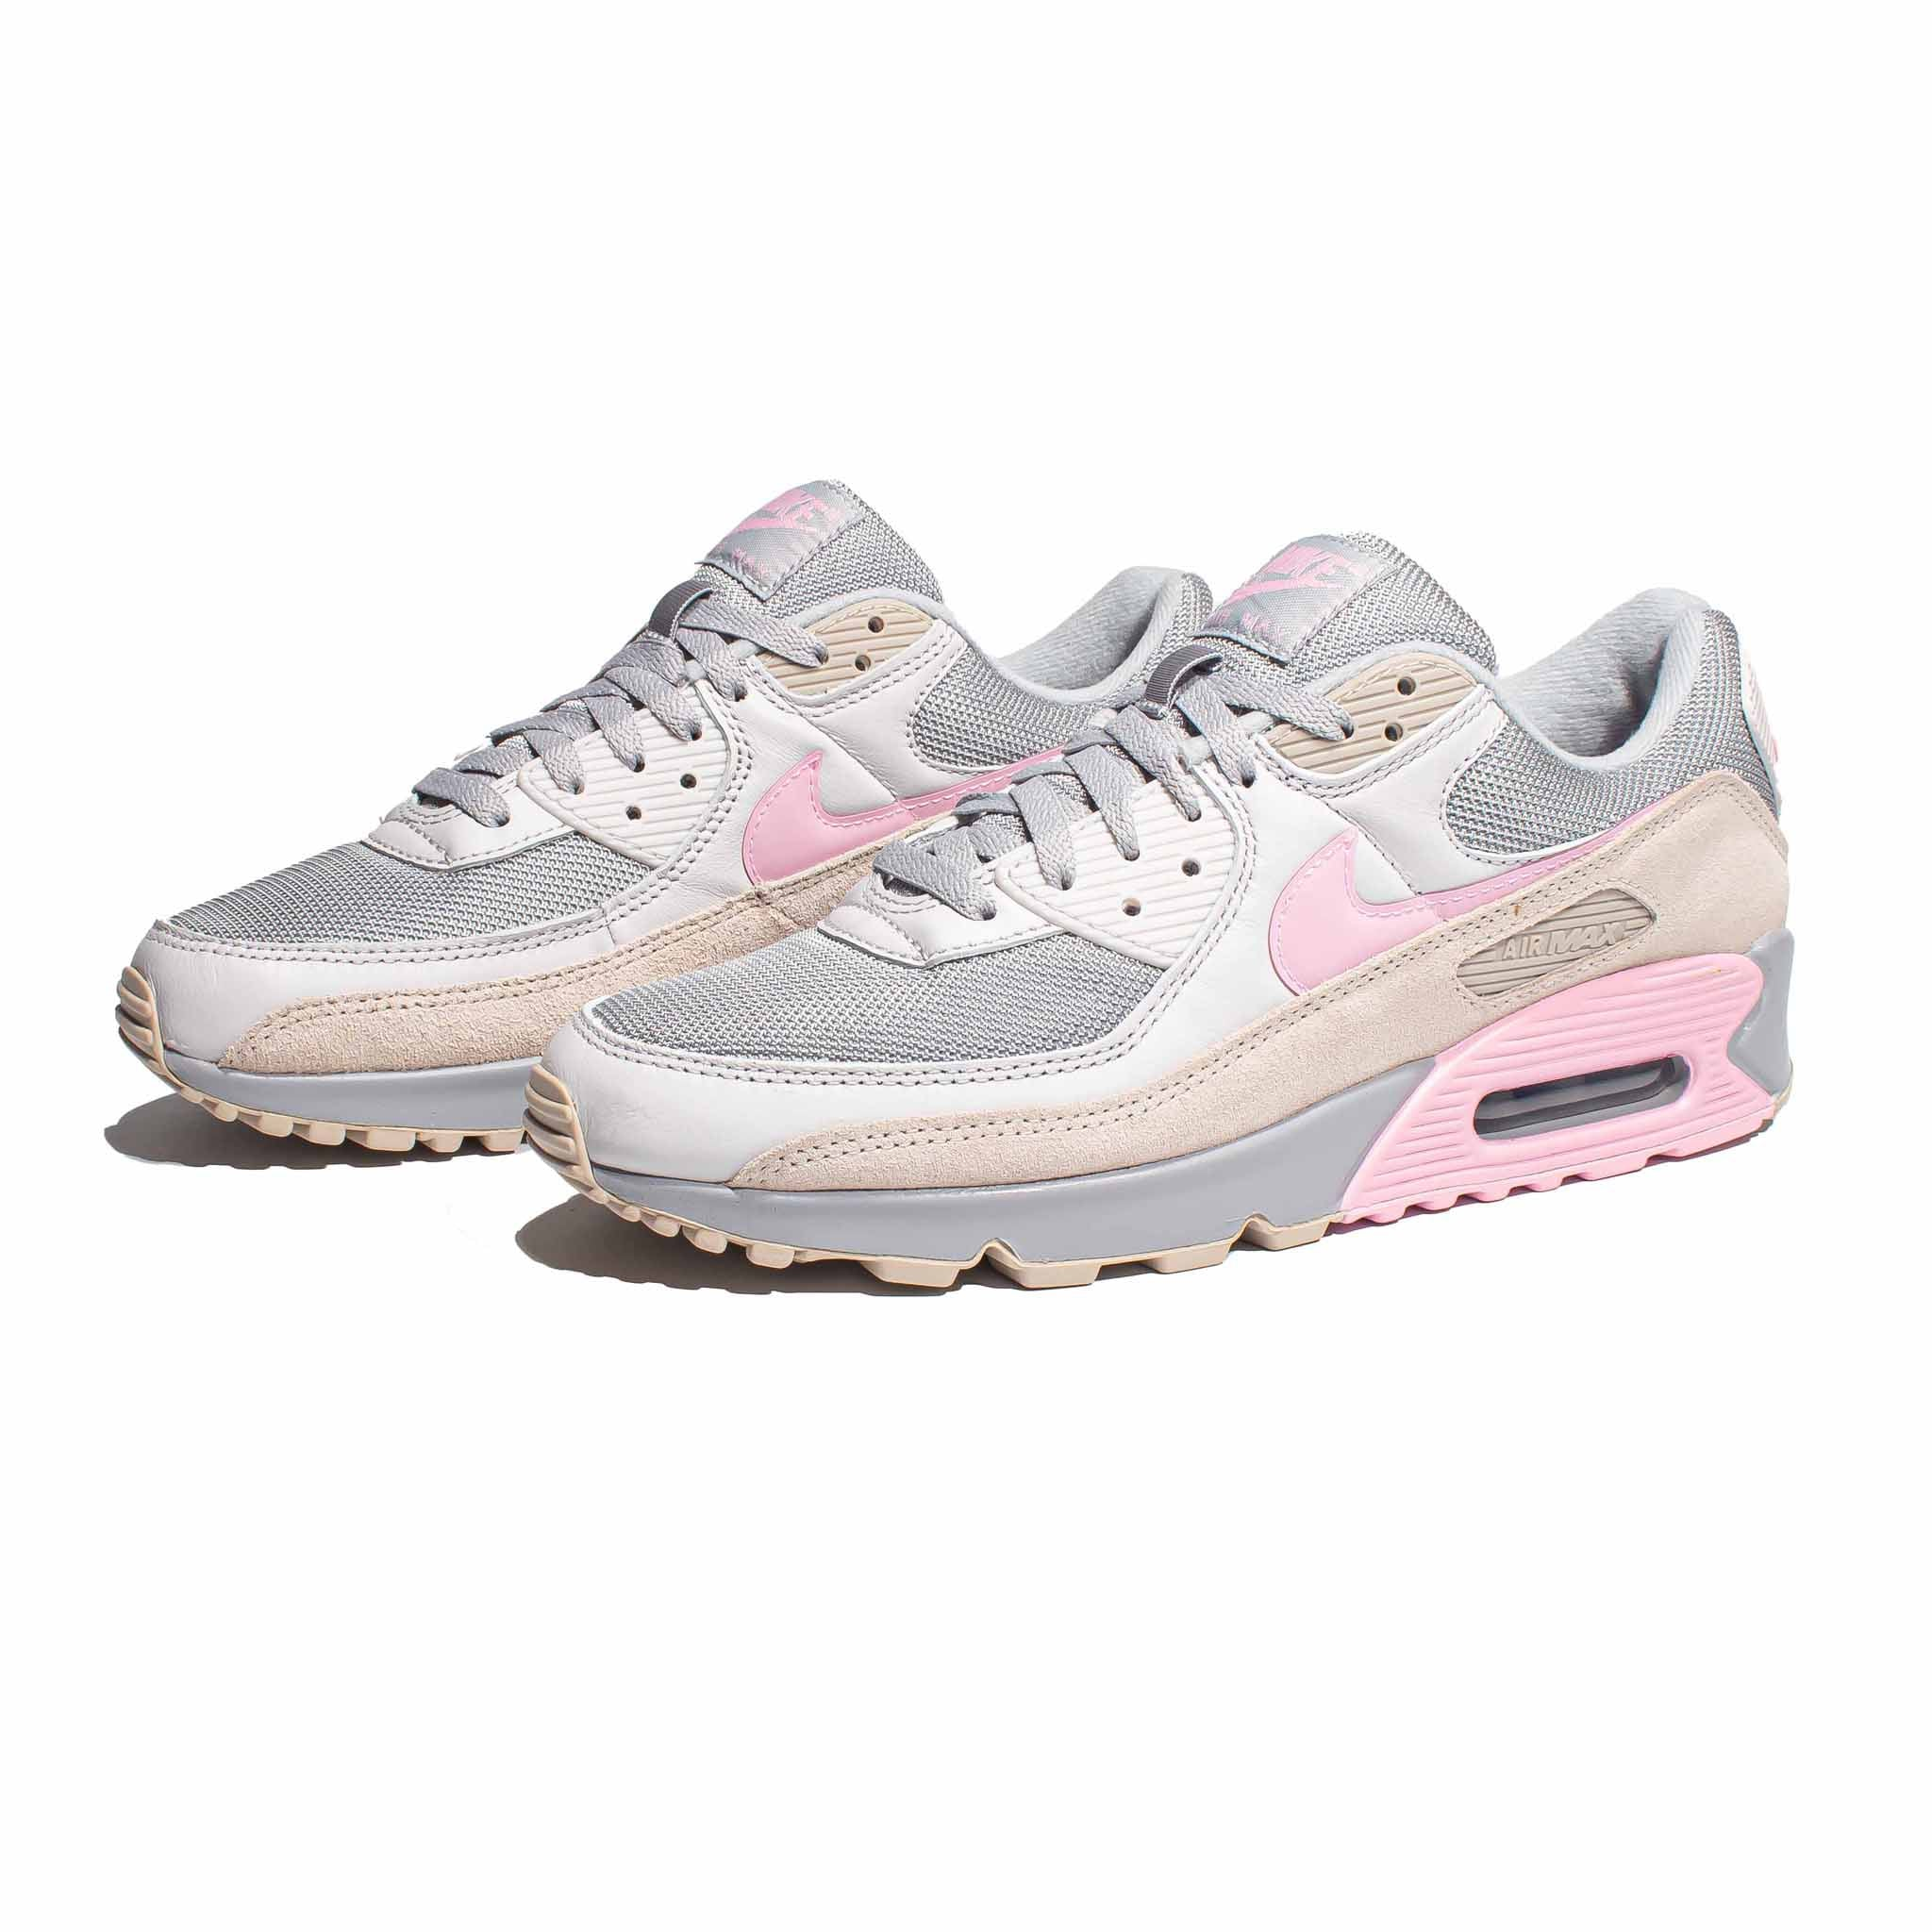 Nike Air Max 90 'Vast Grey/Pink'